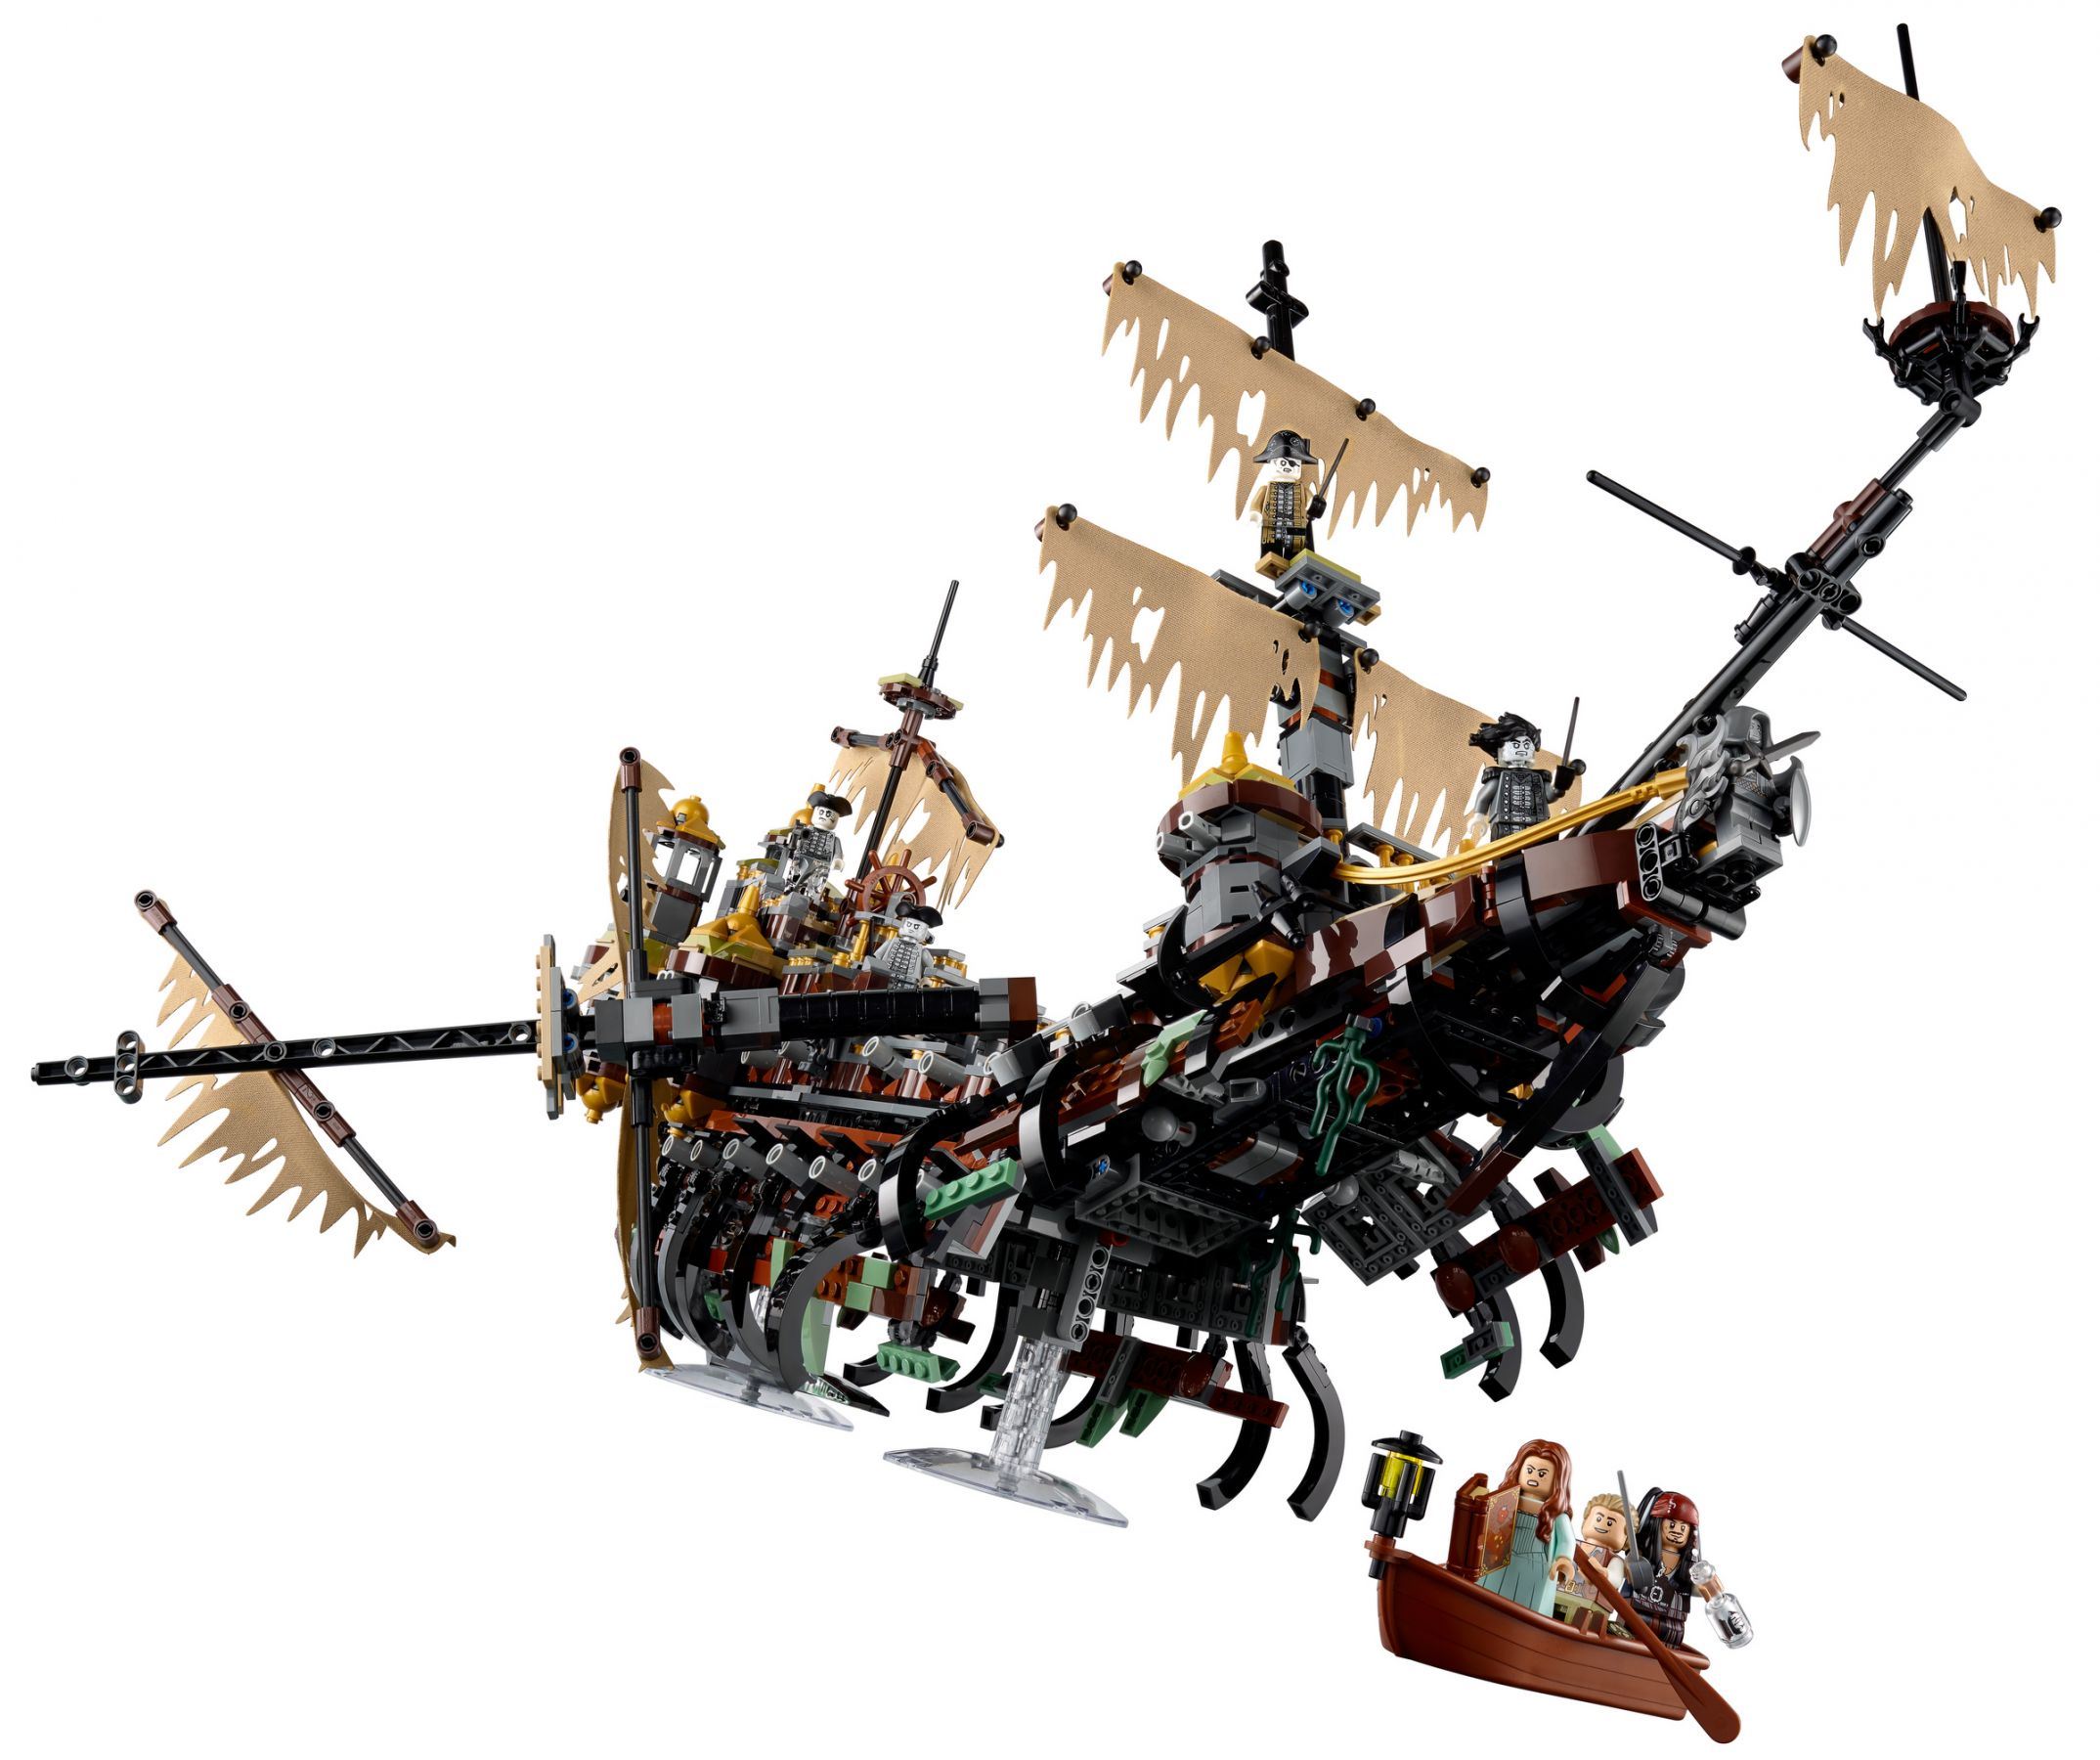 LEGO Advanced Models 71042 Silent Mary LEGO_71042.jpg